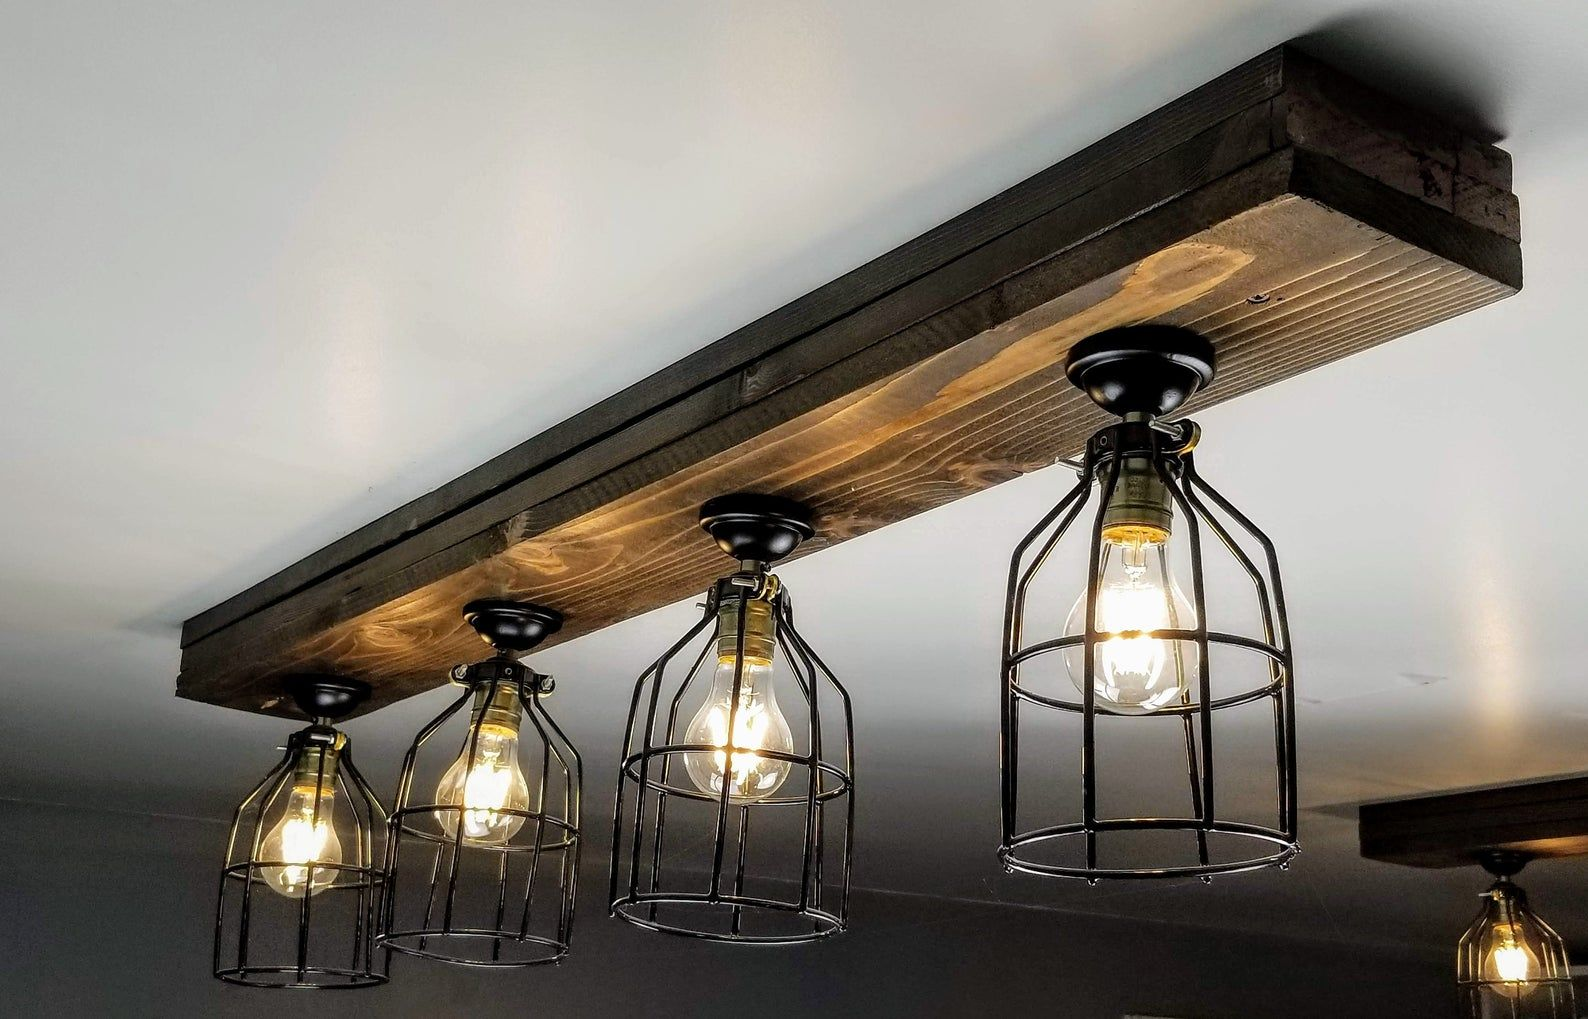 Farmhouse Beam Light With Cages Bulbs Included Etsy Farmhouse Ceiling Light Rustic Track Lighting Barn Lighting